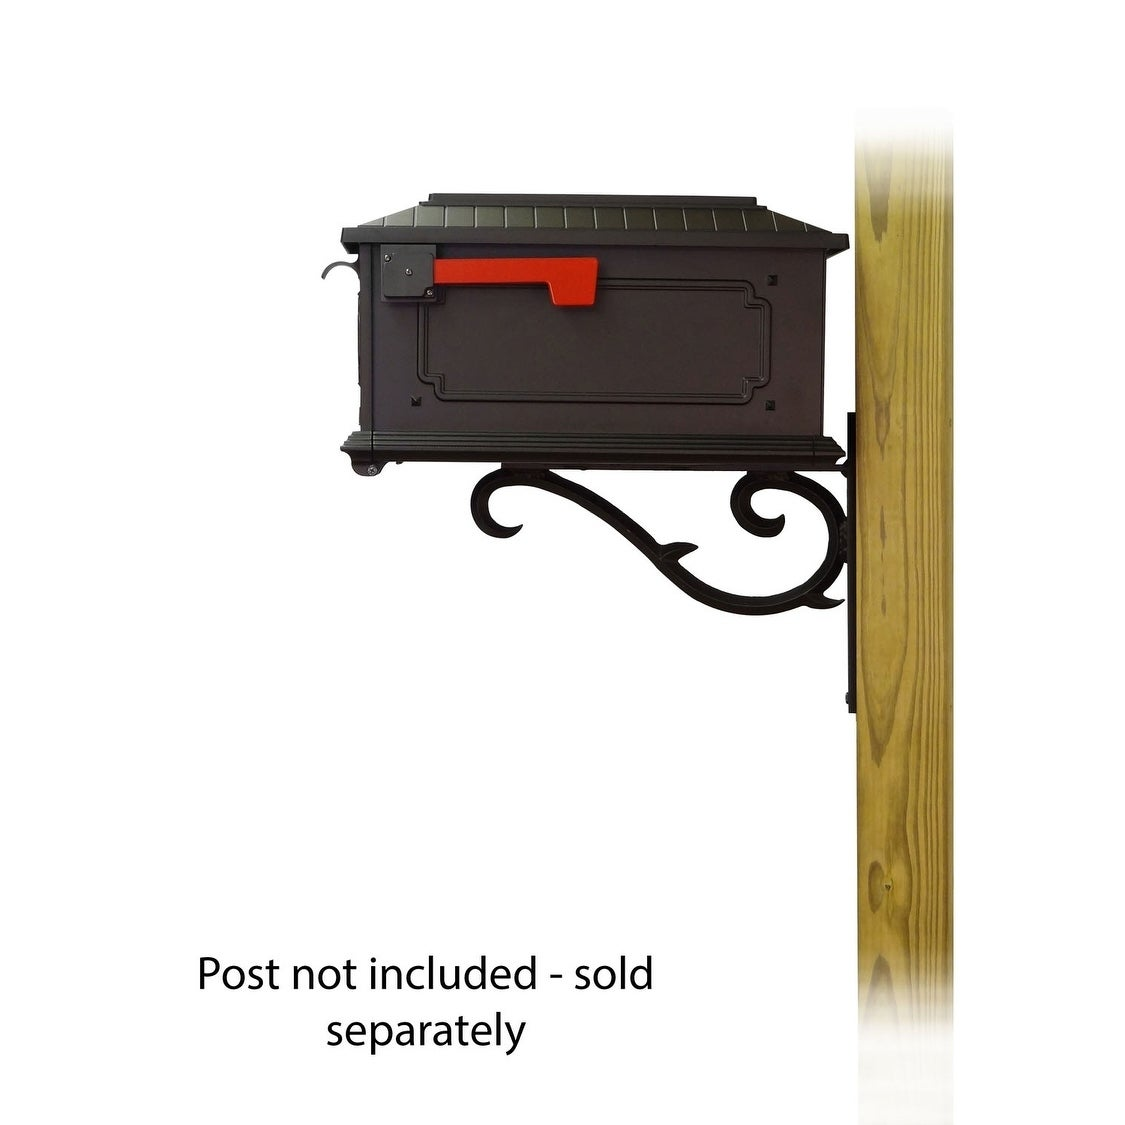 Shop For Special Lite Products Kingston Curbside Mailbox With Sorrento Front Single Mailbox Mounting Bracket Get Free Delivery On Everything At Overstock Your Online Home Improvement Shop Get 5 In Rewards With Club O 25756130